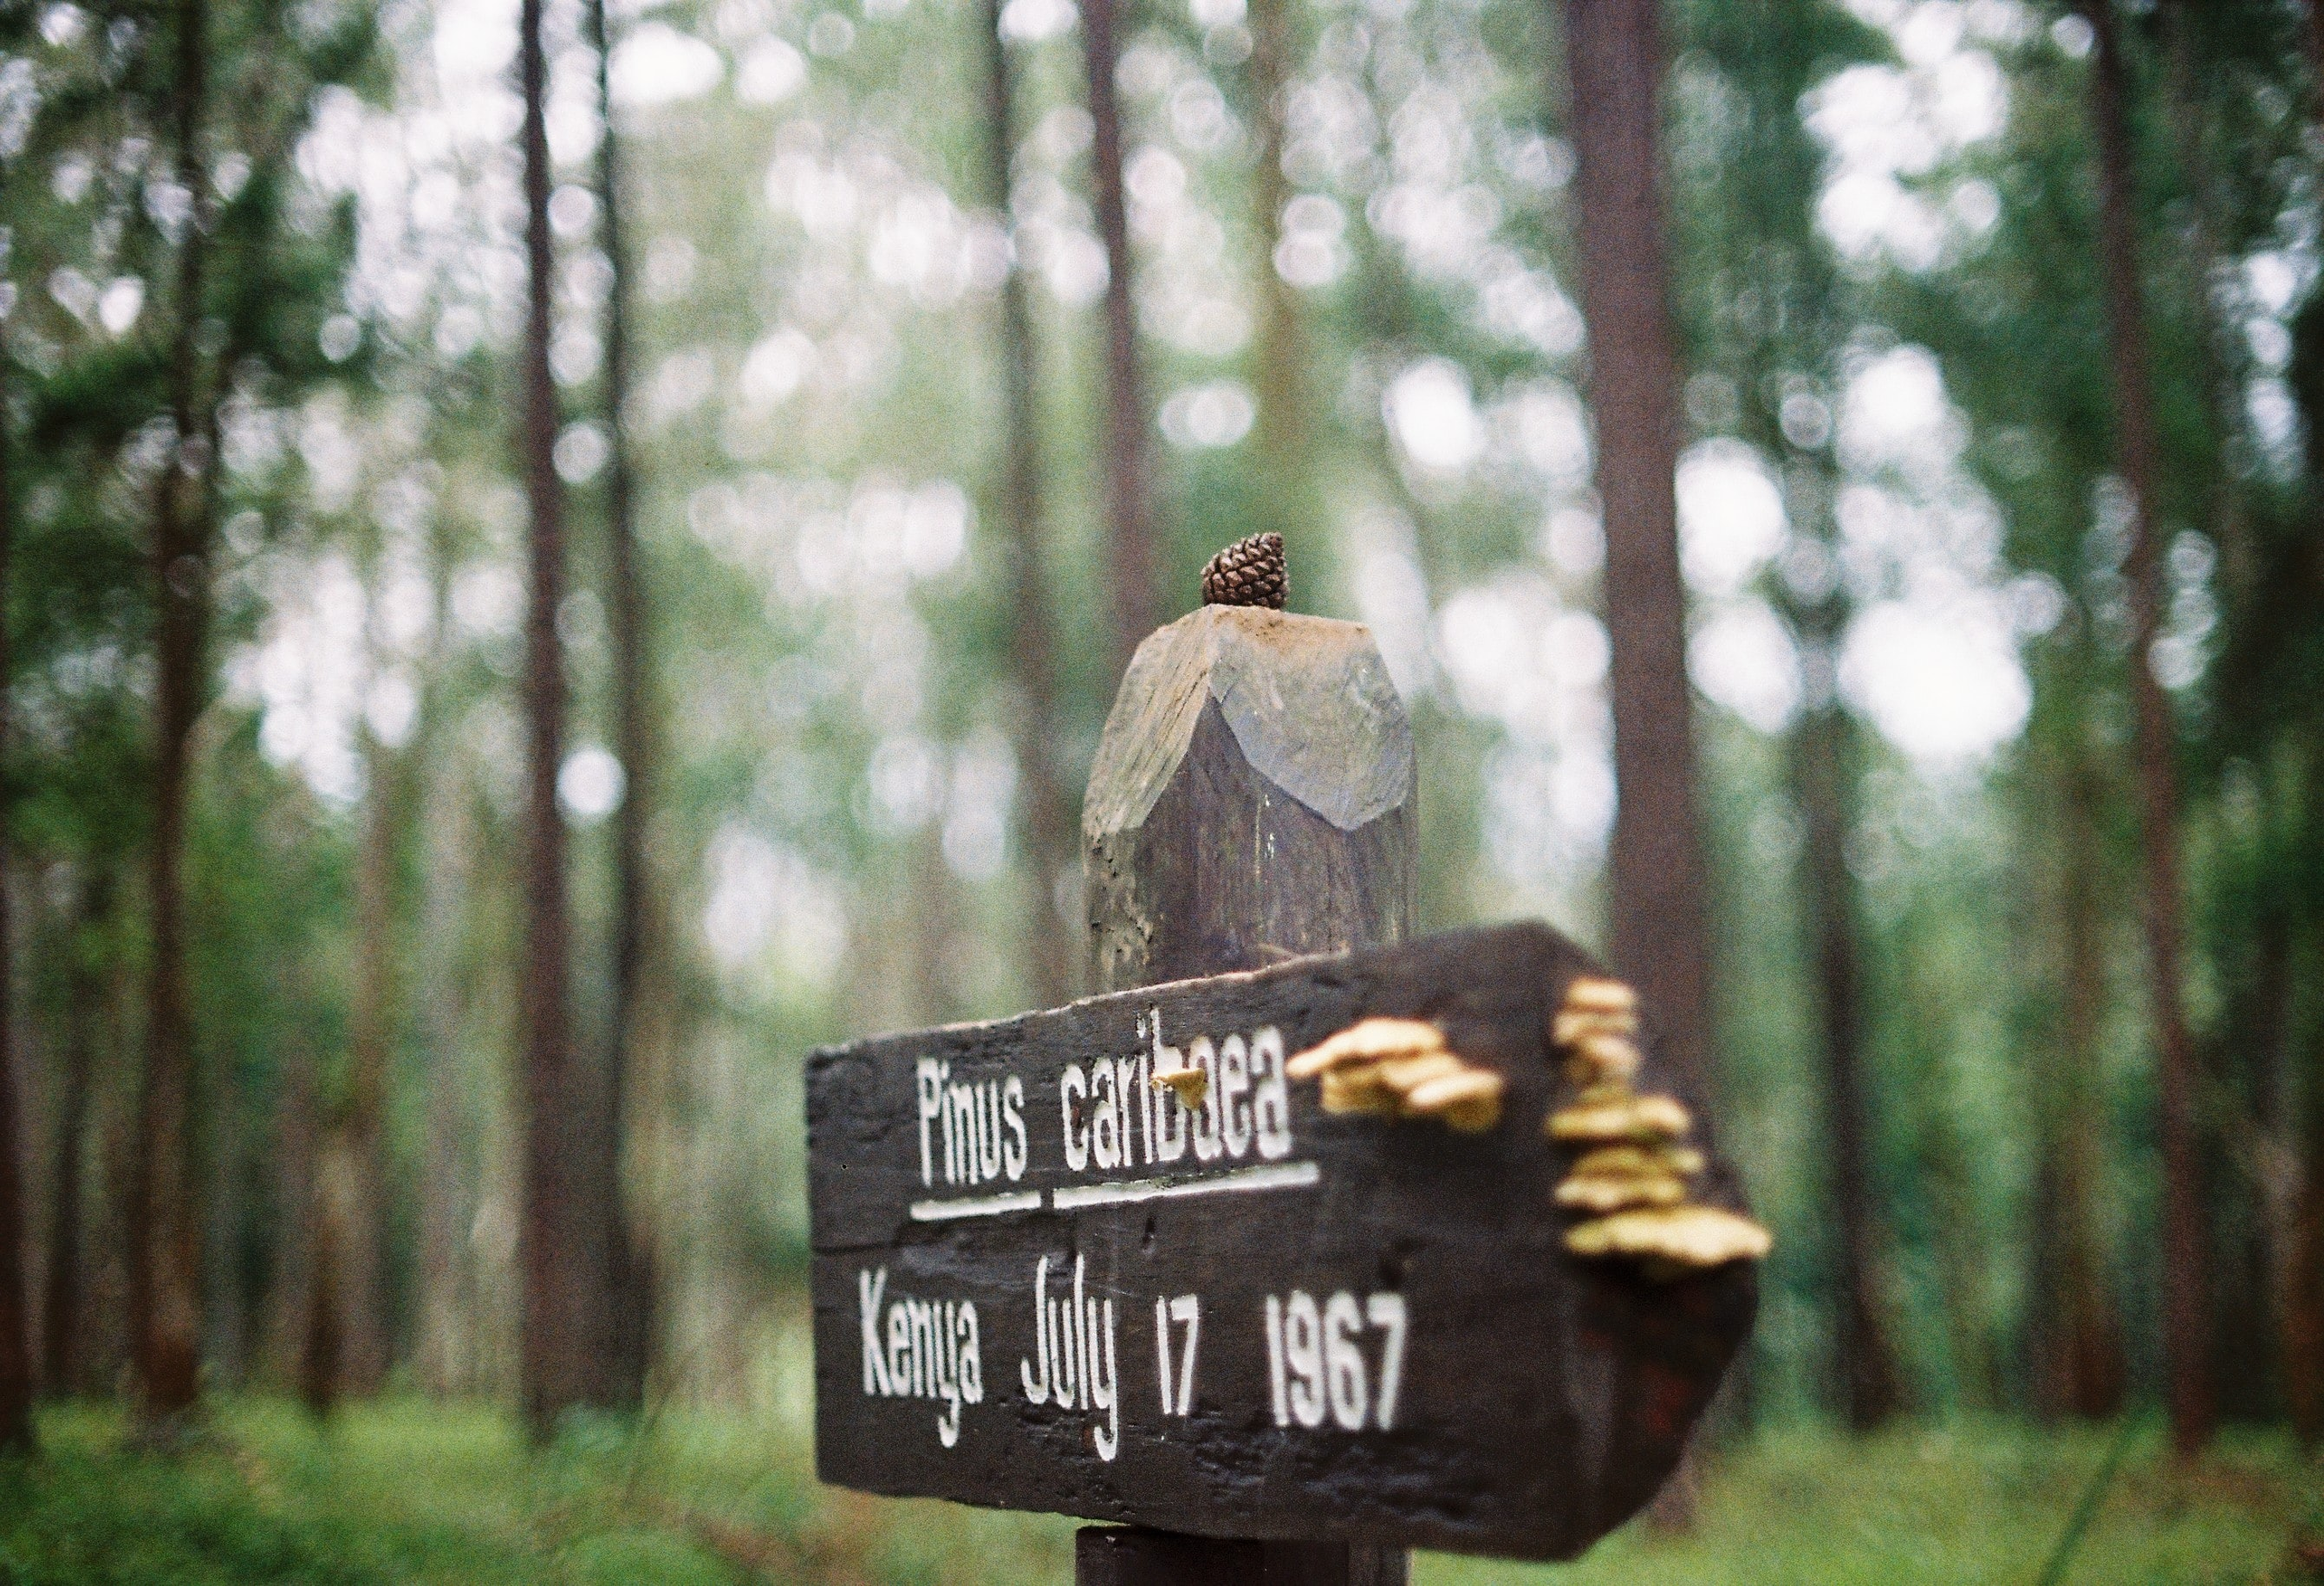 An old wooden signpost in a pine forest